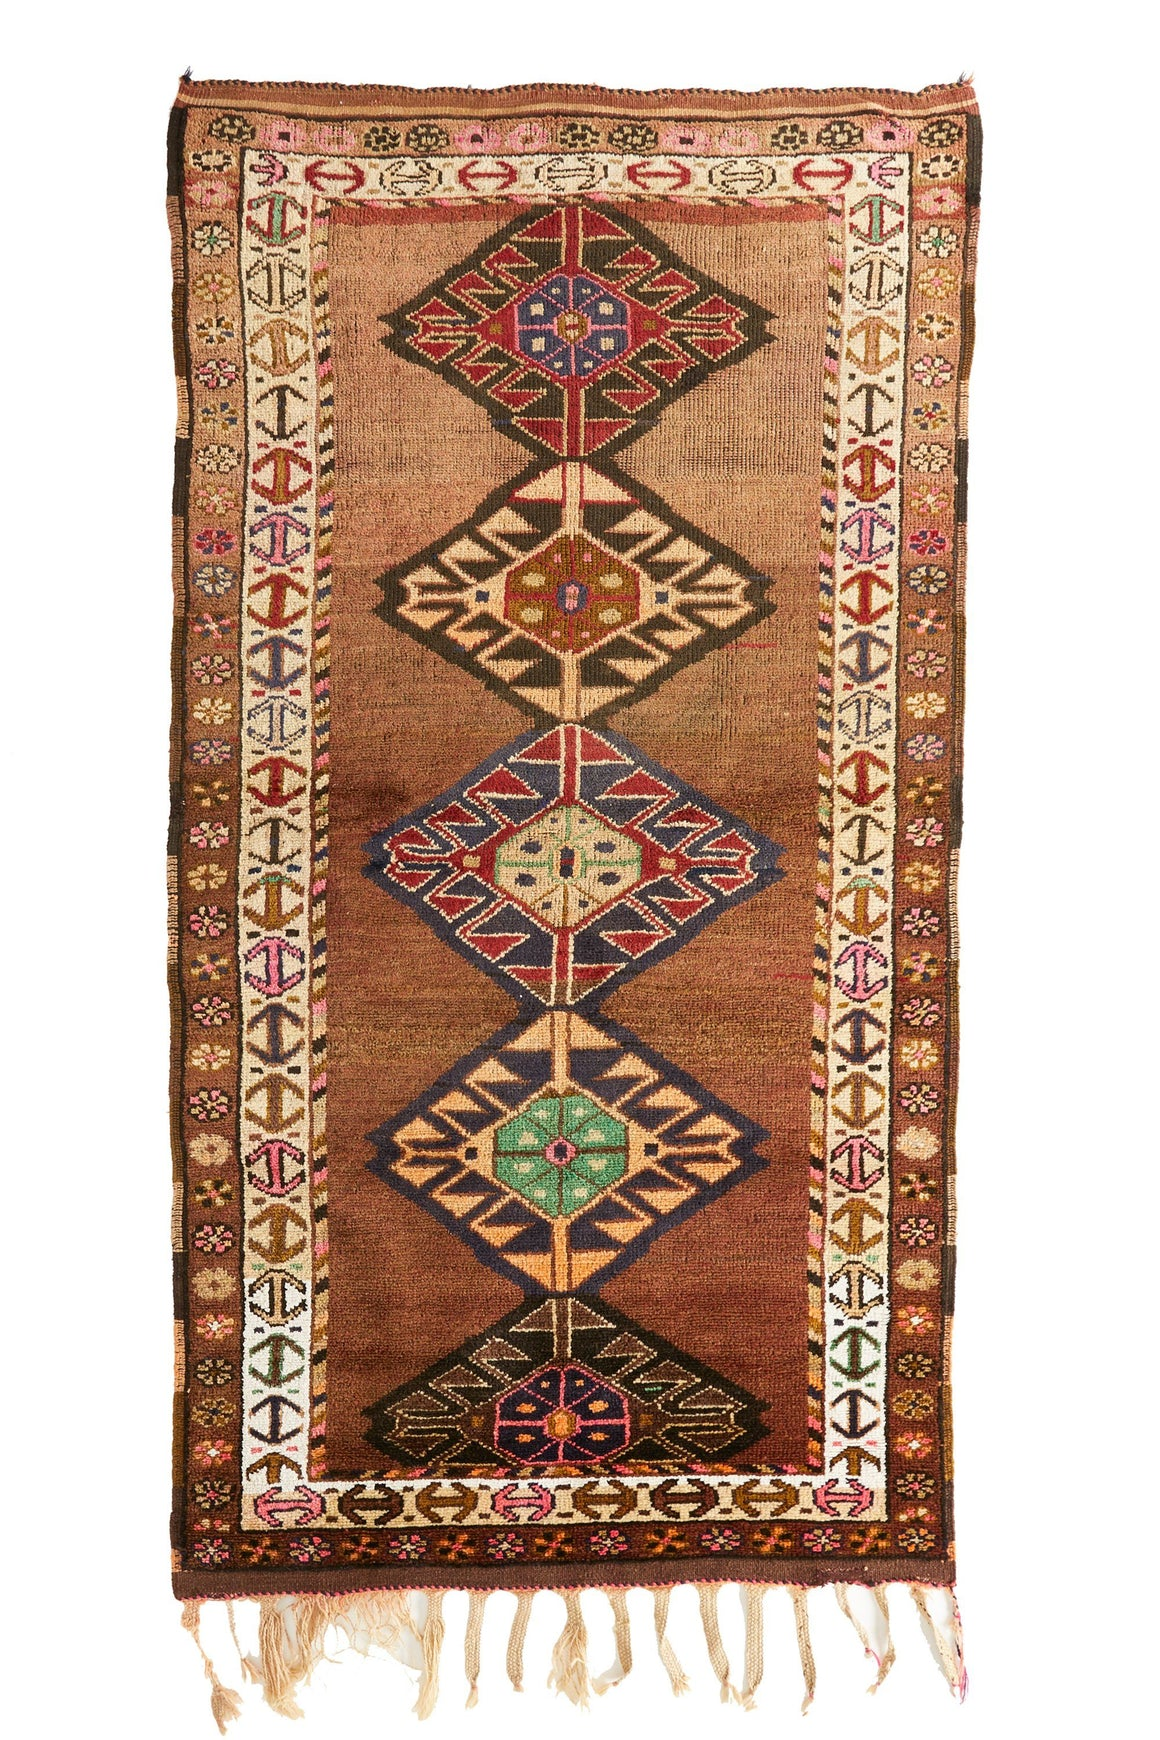 'Aria' Tribal Vintage Area Rug - 4'6'' x 9'3'' - Canary Lane - Curated Textiles